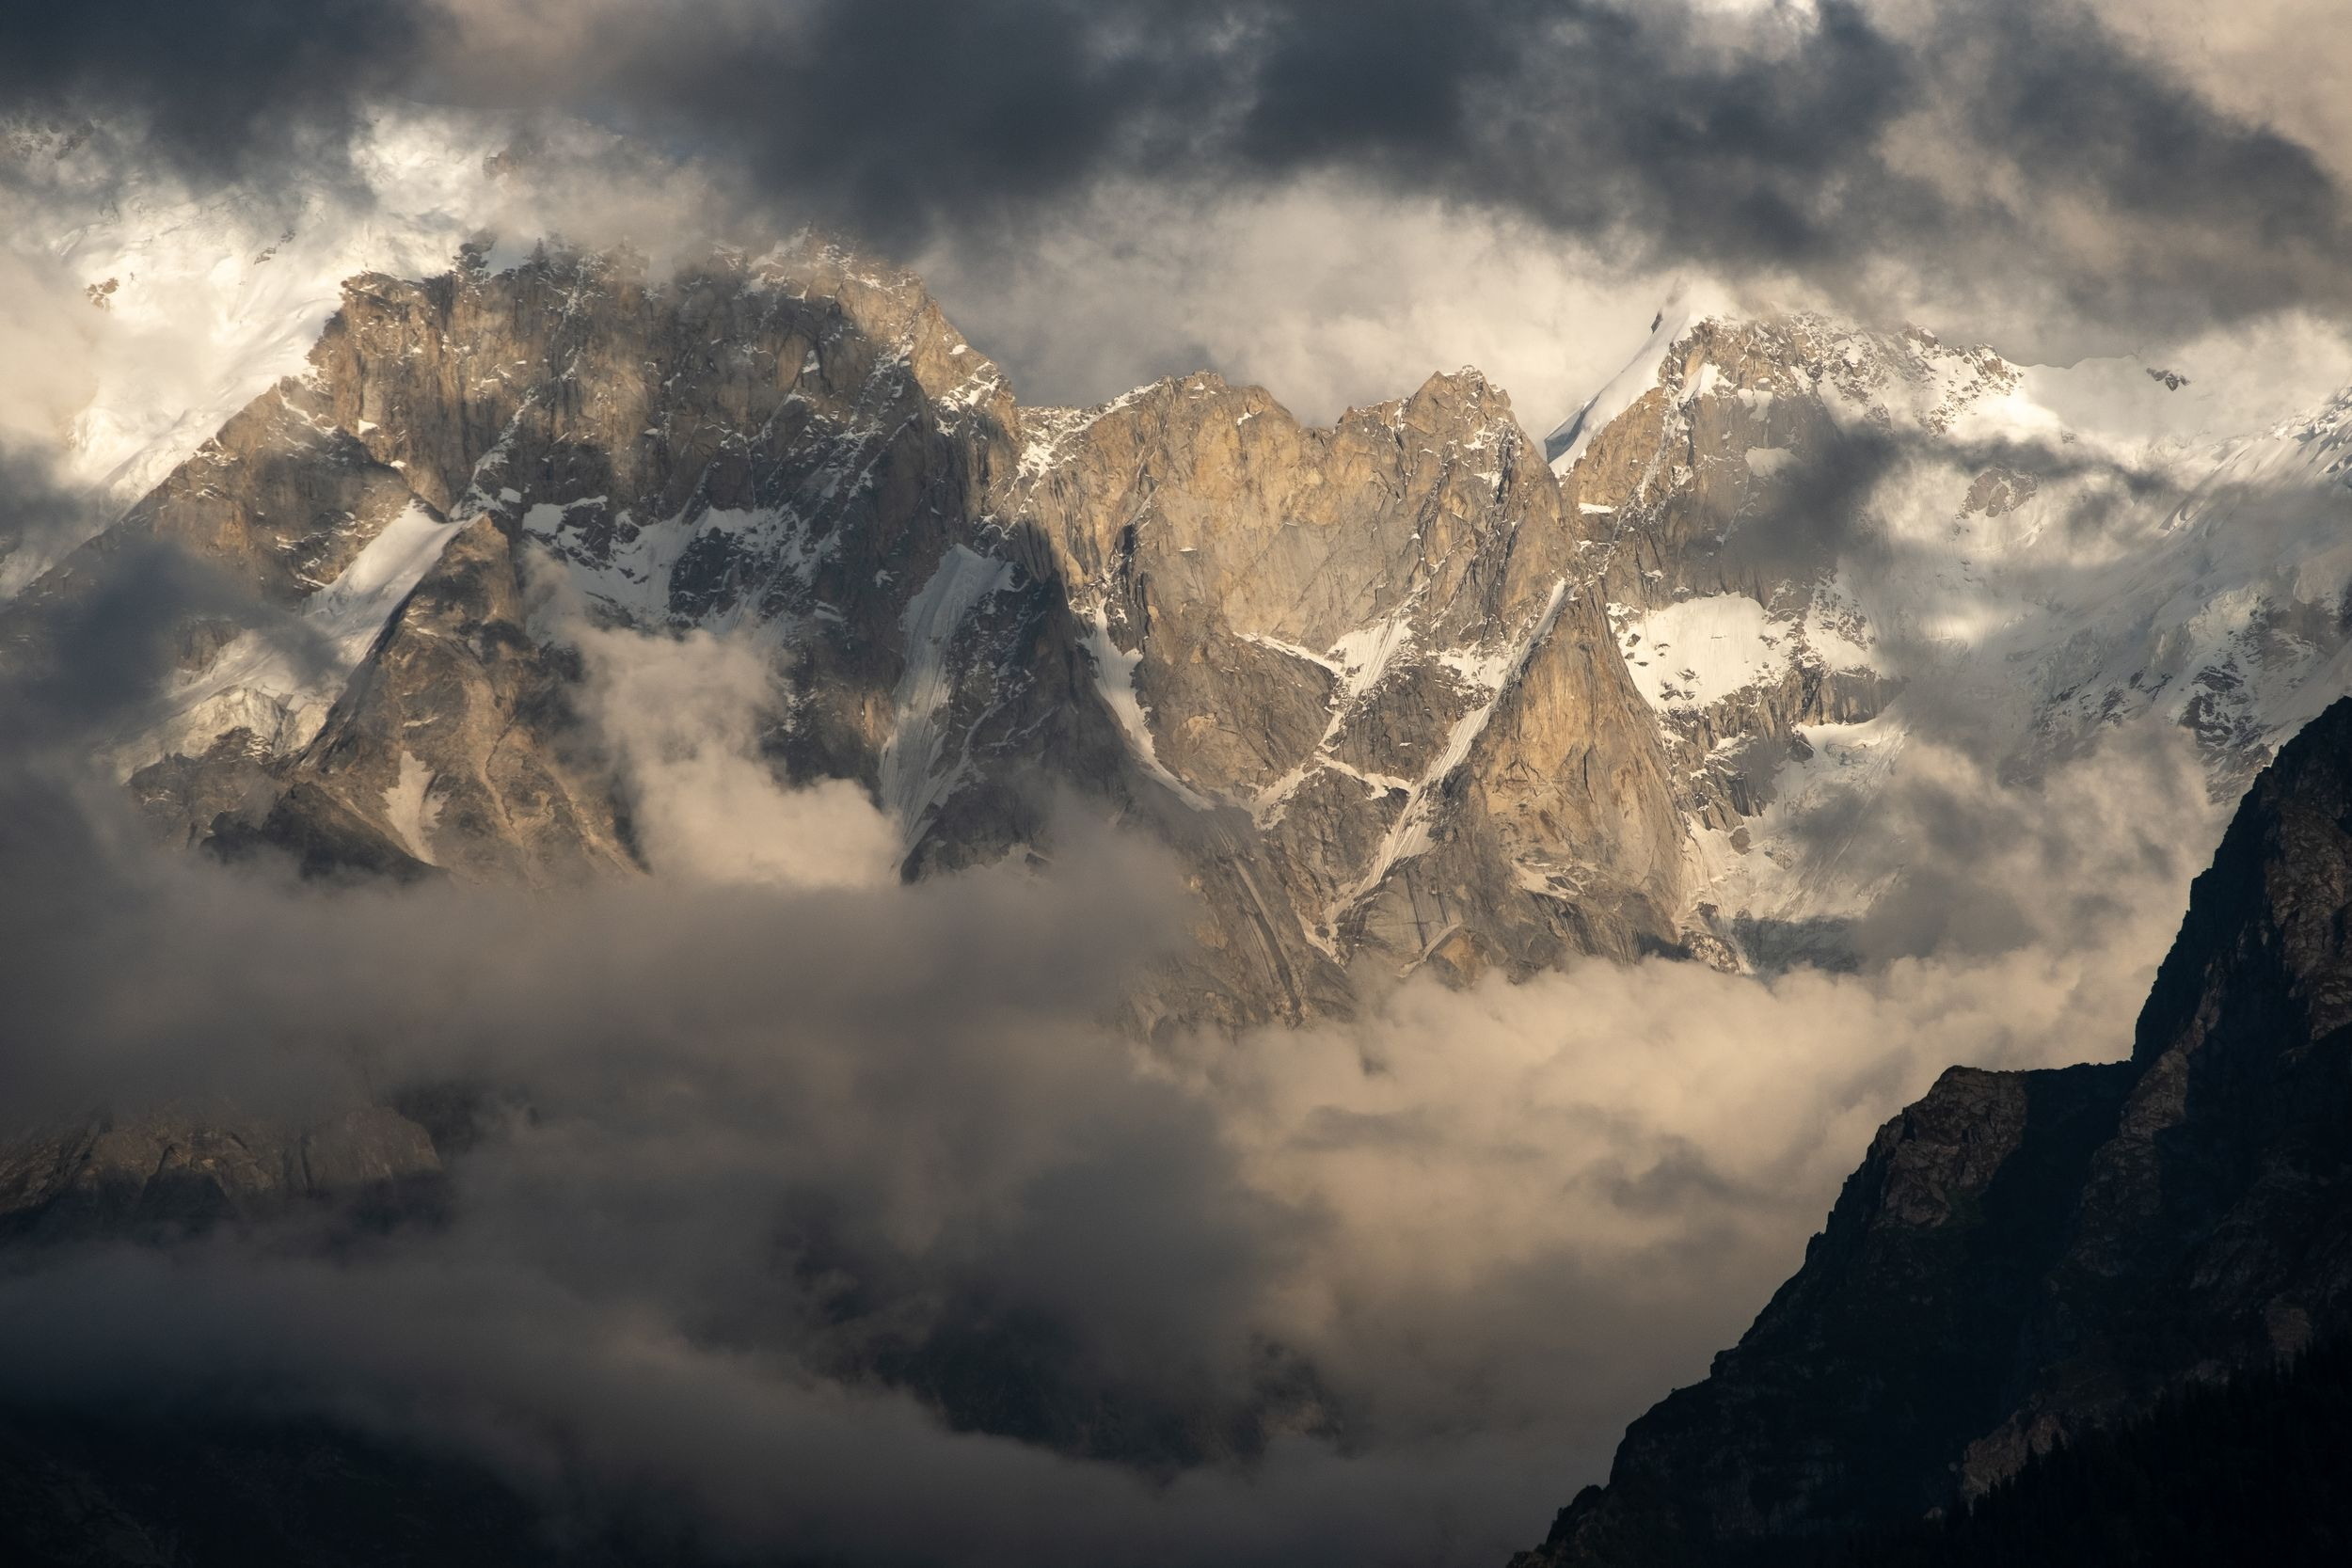 Kalpa, Kinner Kailash, Spiti Valley, Mud, Pin Valley, Himachal Pradesh, India, Kaza, Chandra Tal, Rohtang pass, Manali